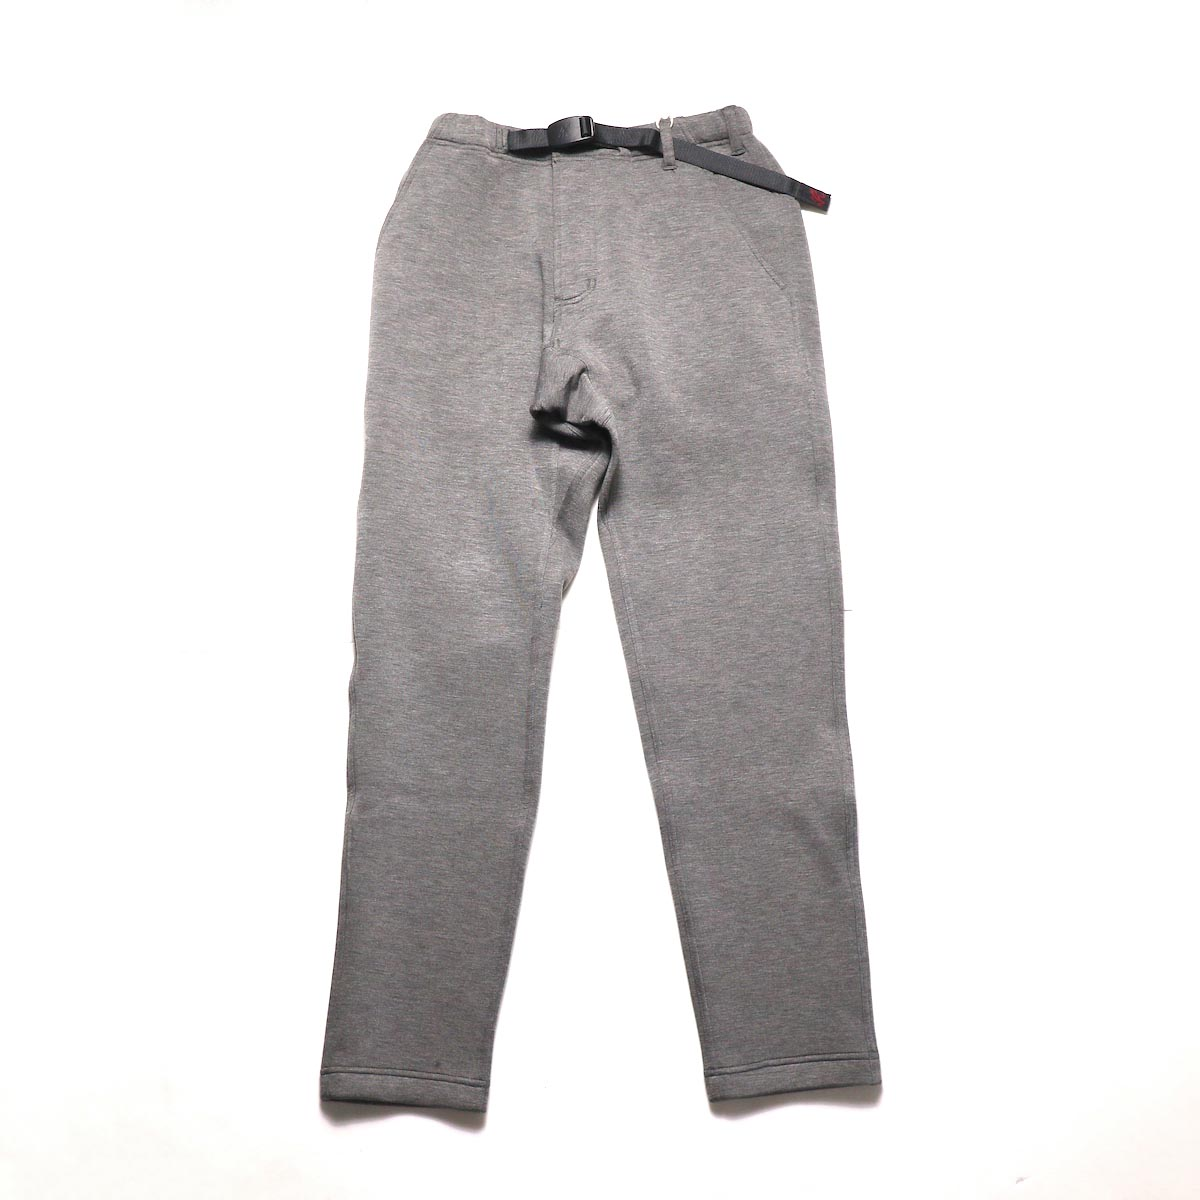 GRAMICCI / TECK KNIT SLIM FIT PANTS (Heather Charcoal)正面